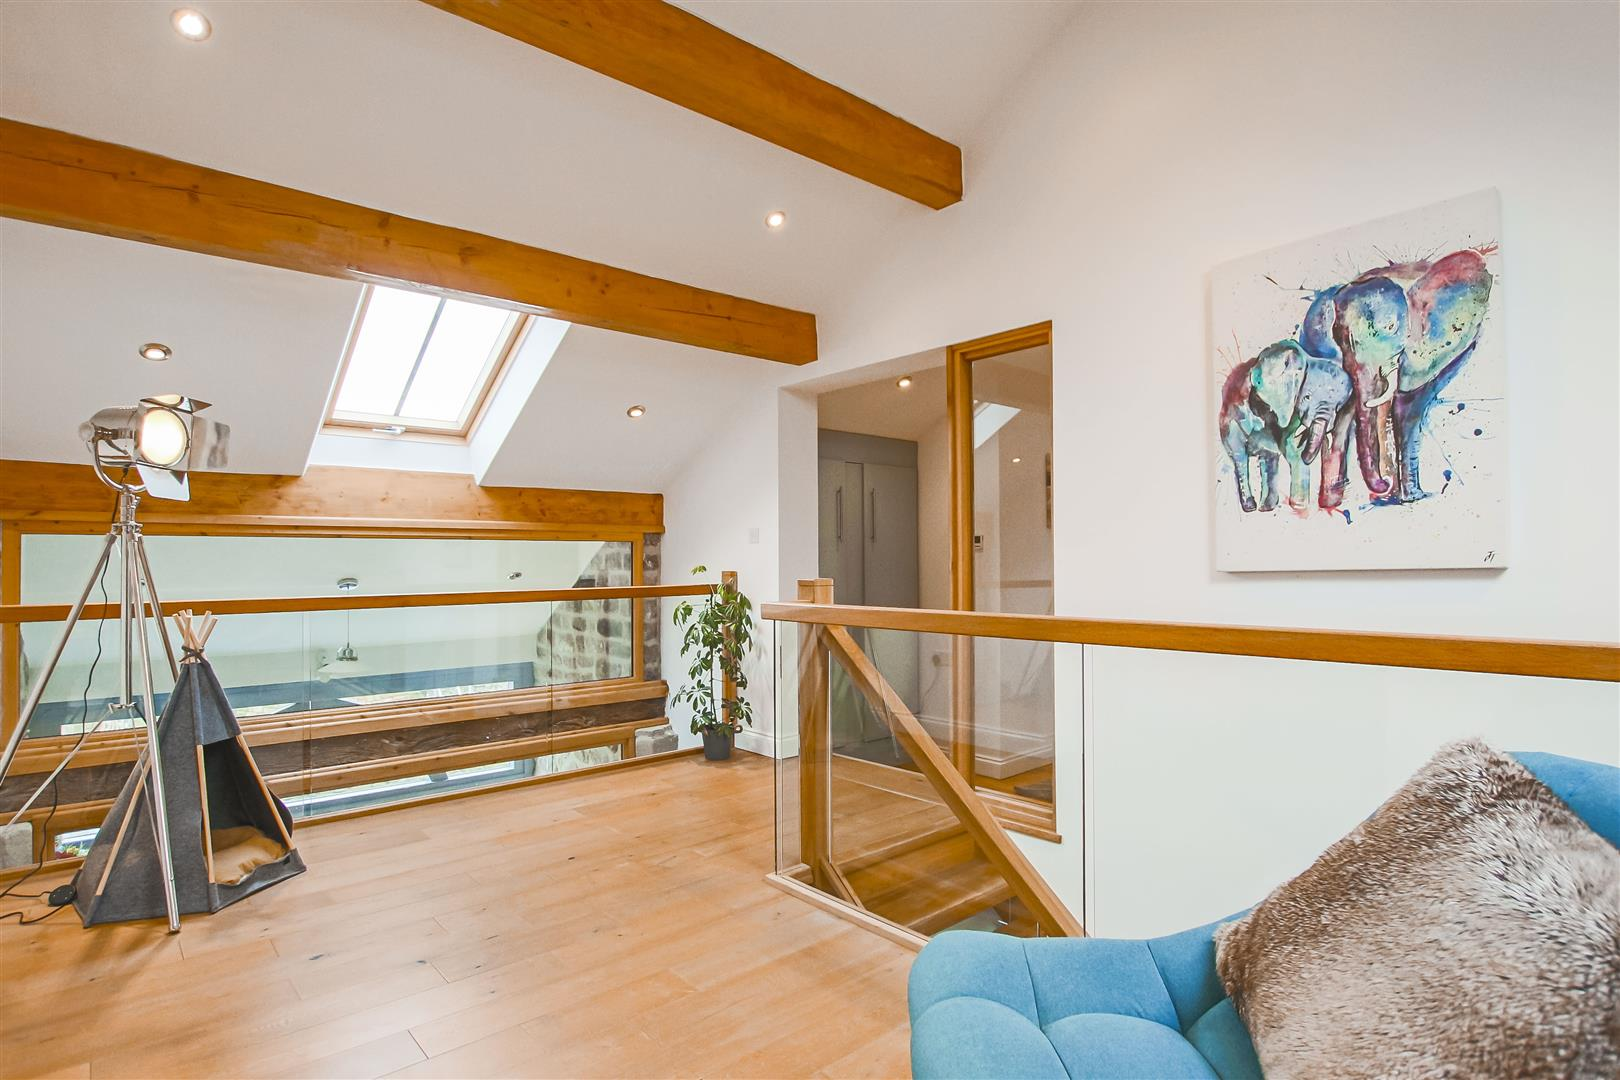 4 Bedroom Barn Conversion For Sale - Gallery Landing